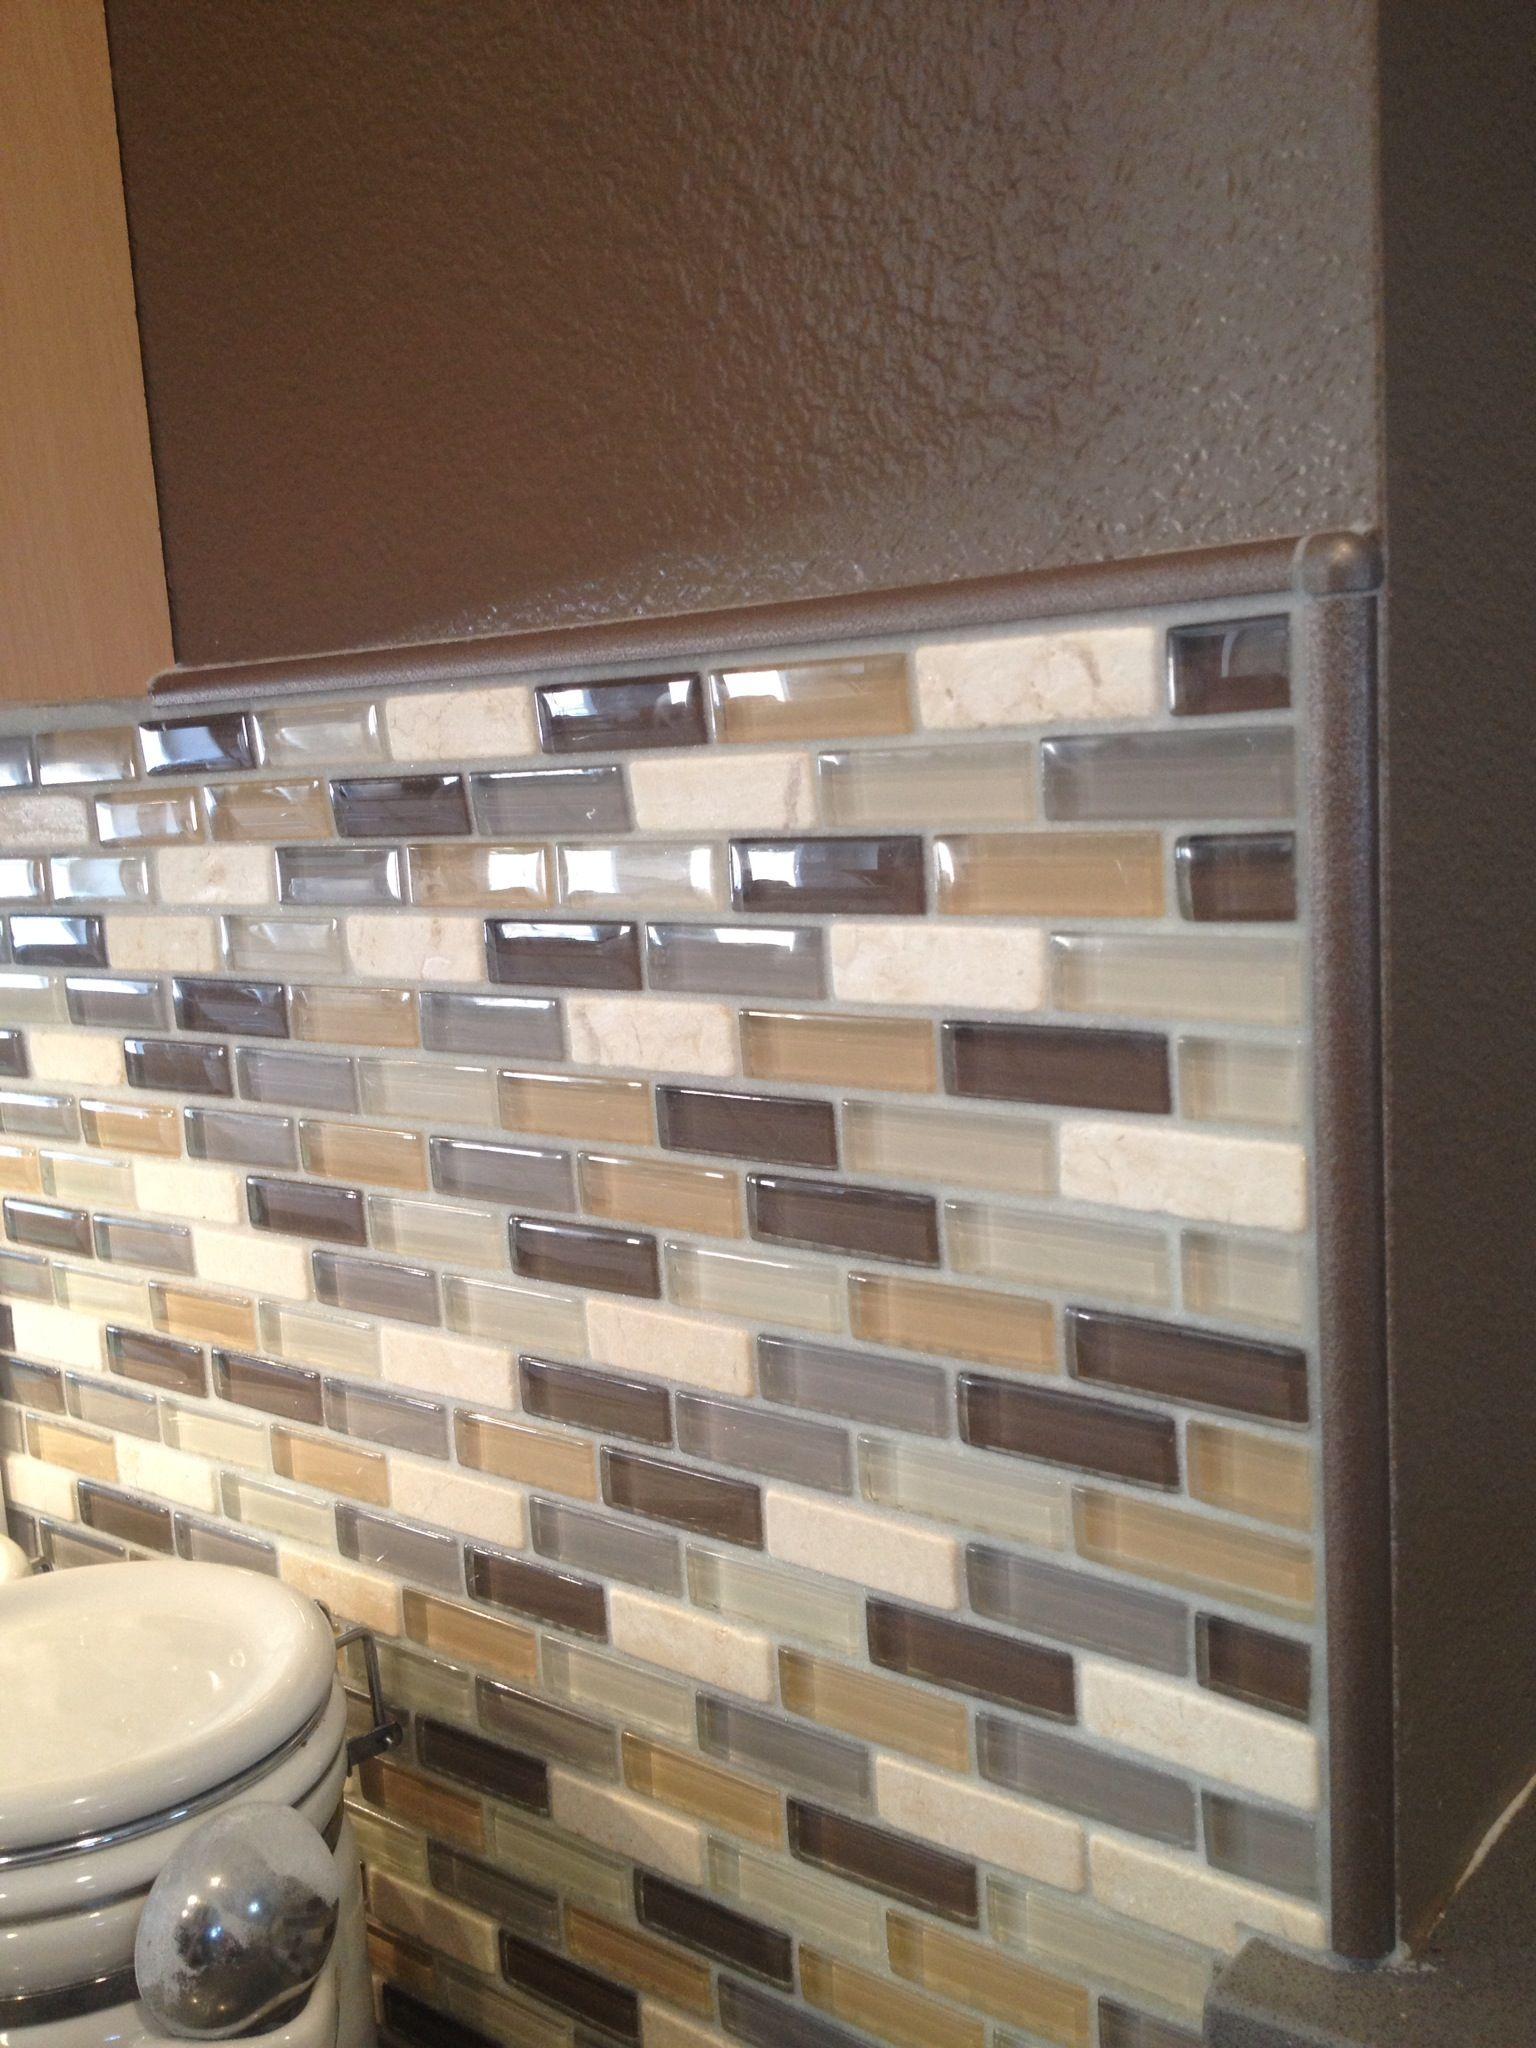 Gl Mosaic Backsplash In Neutral Colors Complete With Schluter Edge Profile Pieces